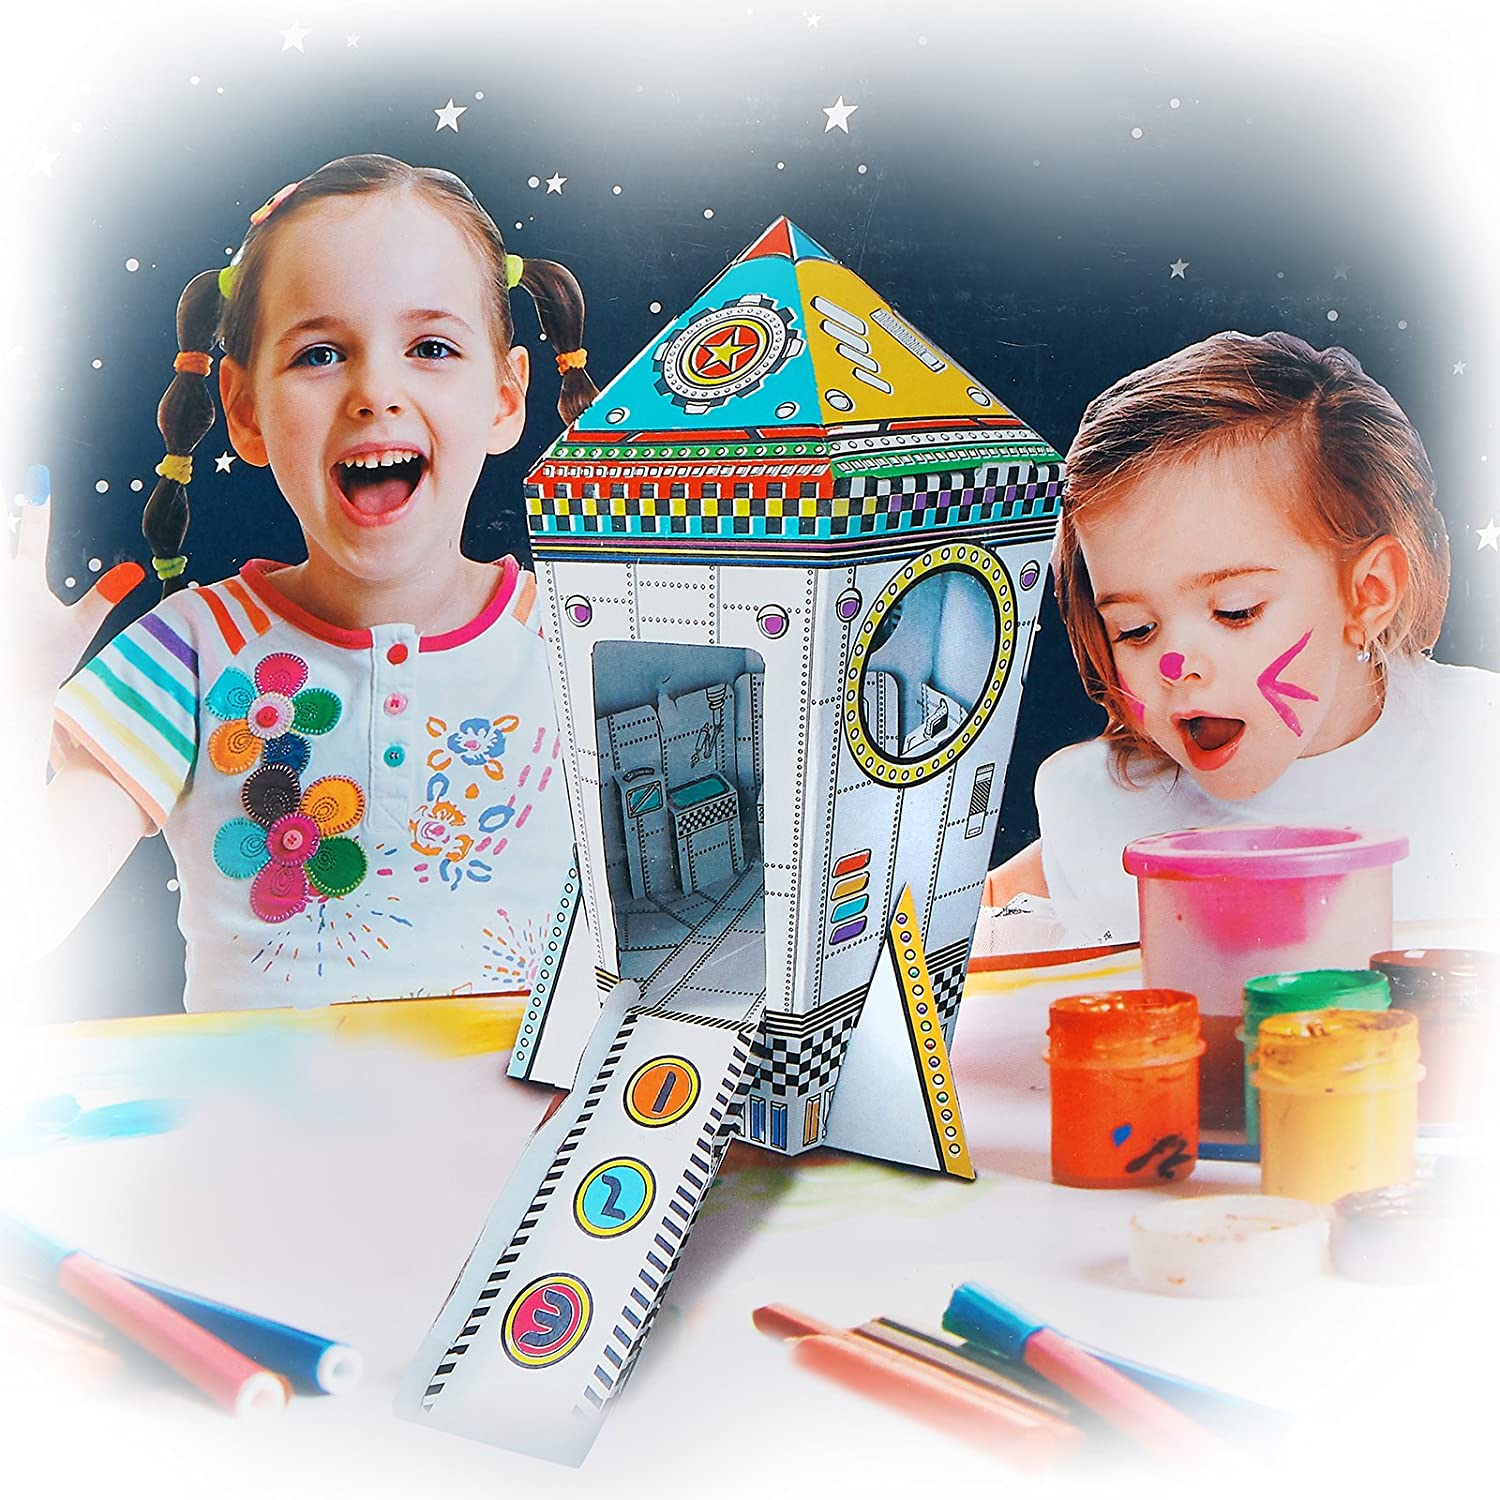 My Mini Rocket Ship Cardboard Playhouse for Kids to Color Create your Own Indoor Fort Life Size Foldable for Easy Storage by Spiritoy